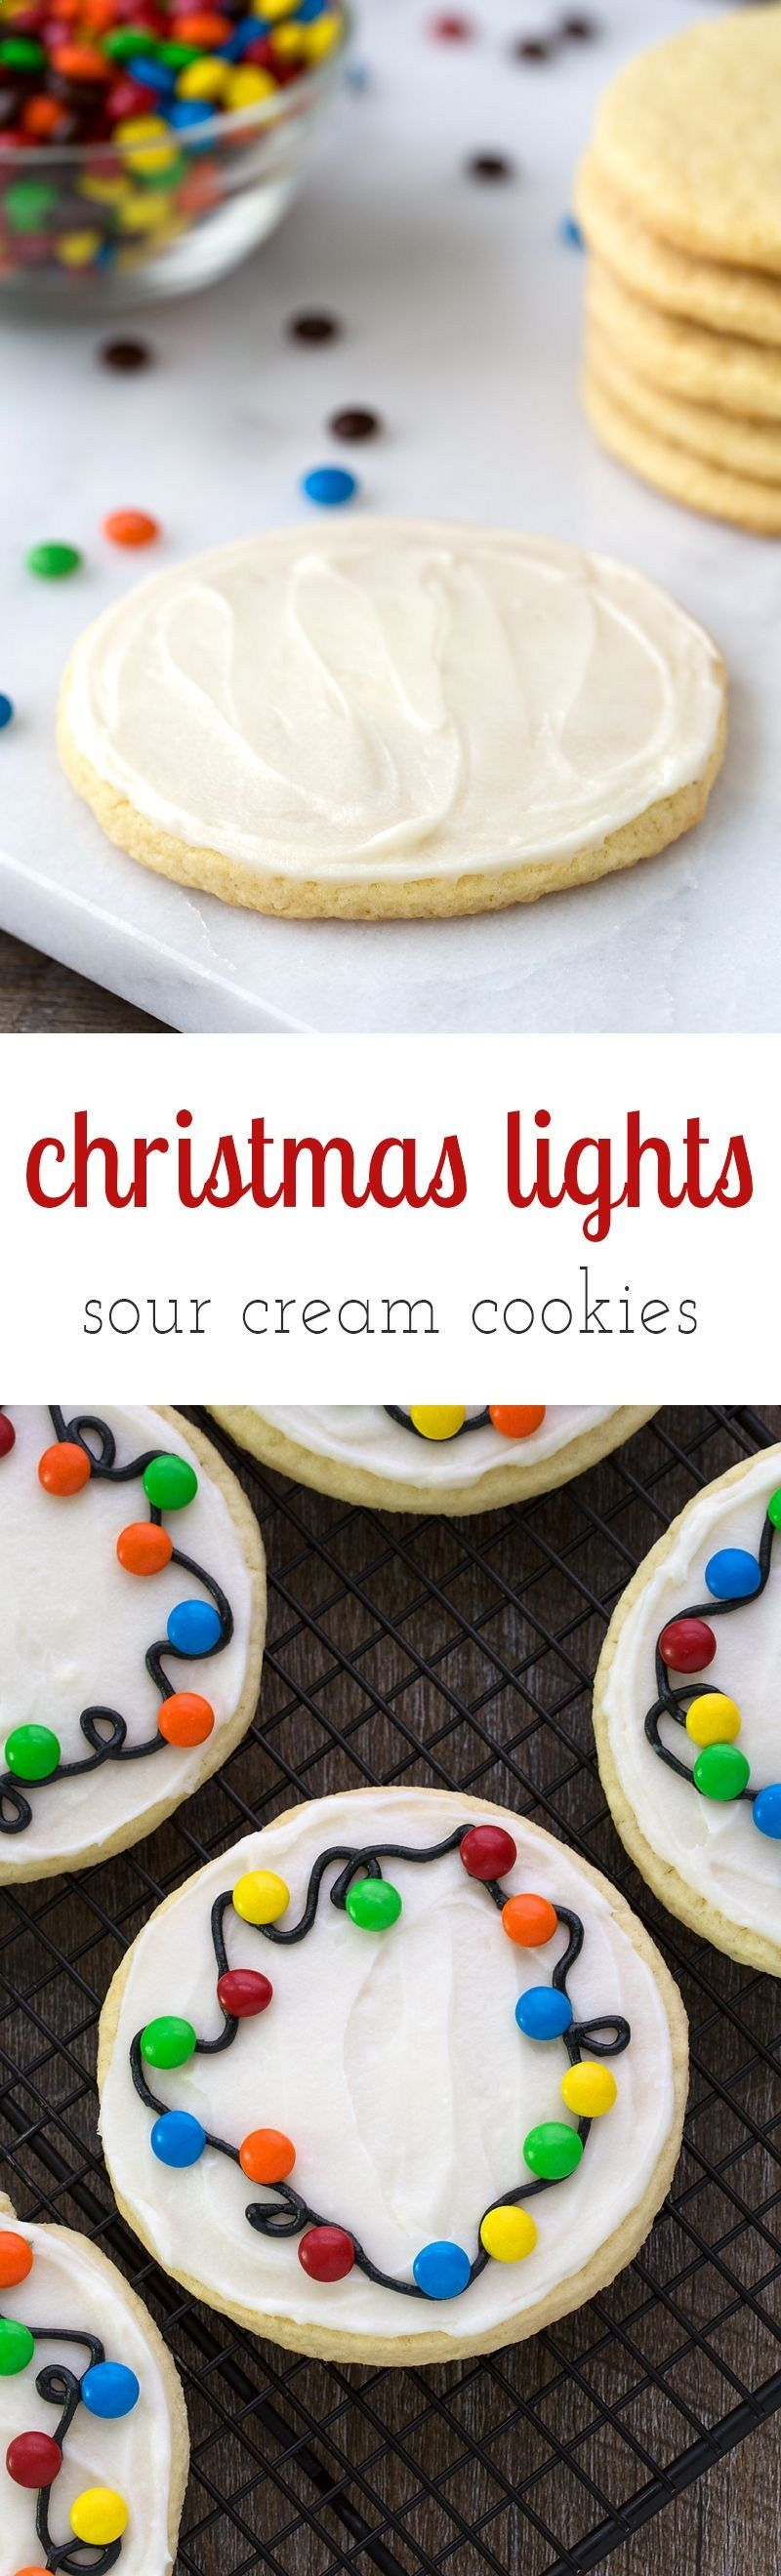 Guaranteed to please kids of all ages, Christmas Lights Cookies are an easy and fun cookie to make for holiday gatherings. Perfect for cookie exchanges! via HTTP://www.pinterest.com/fireflymudpie/